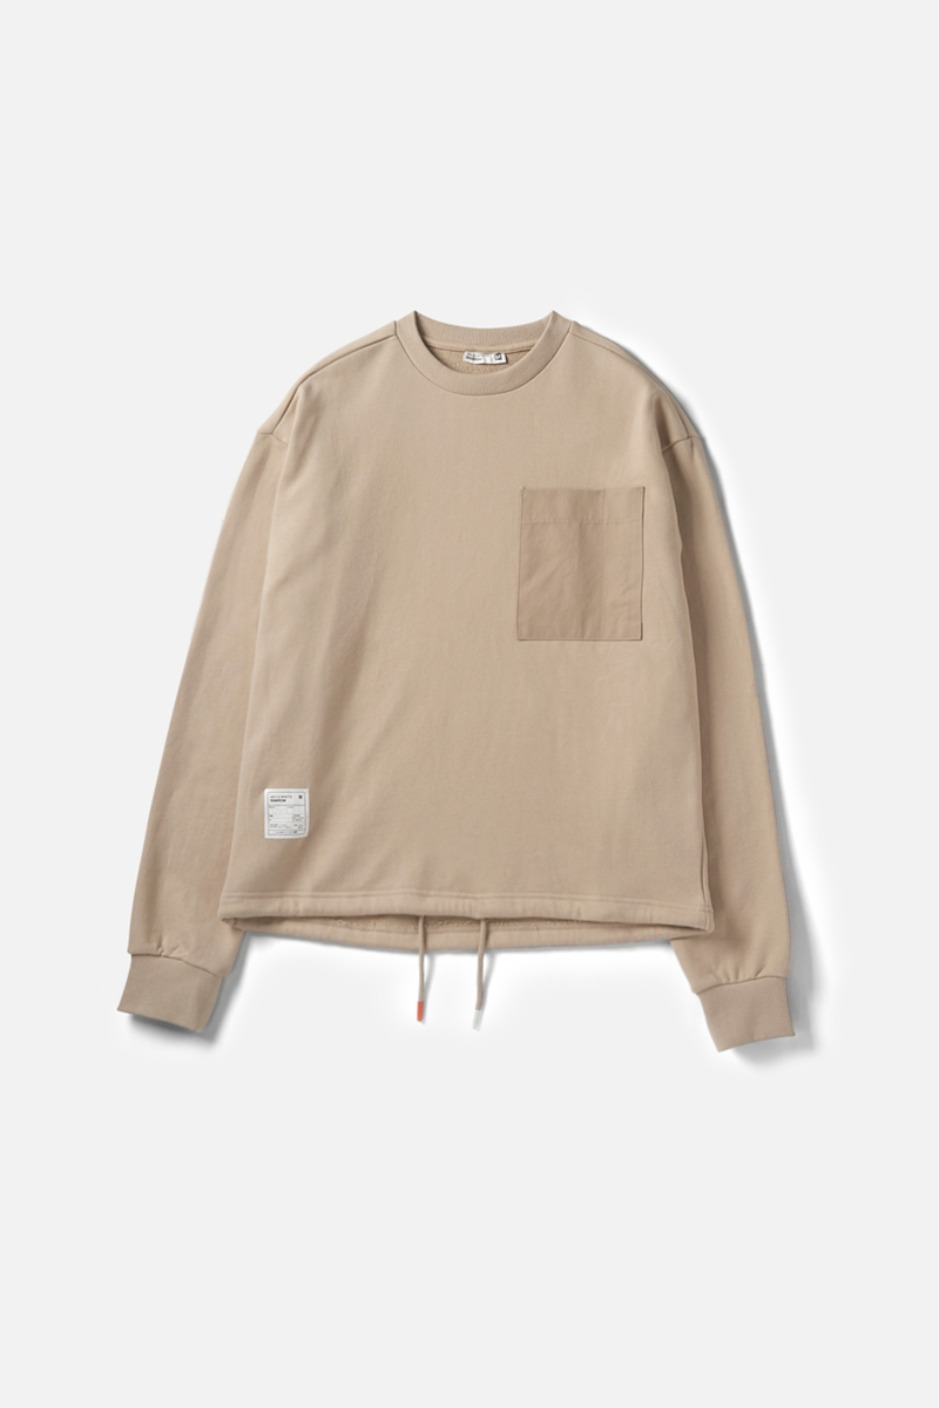 RAWROW X AECA WHITE STRING SWEAT SHIRT-BEIGE